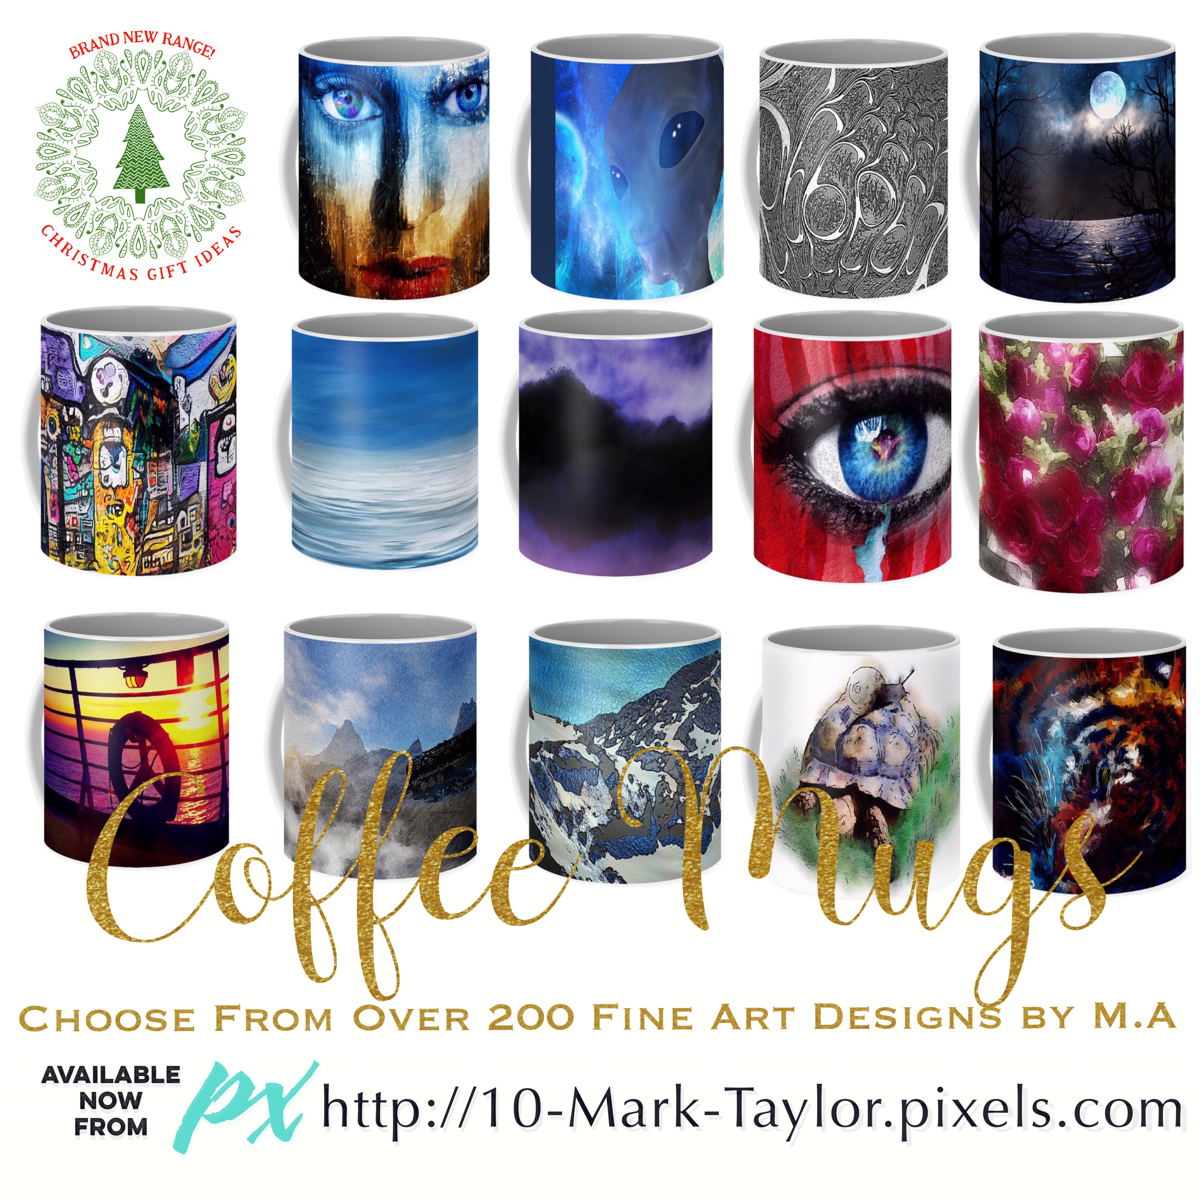 visit Mark Taylor art at Pixels